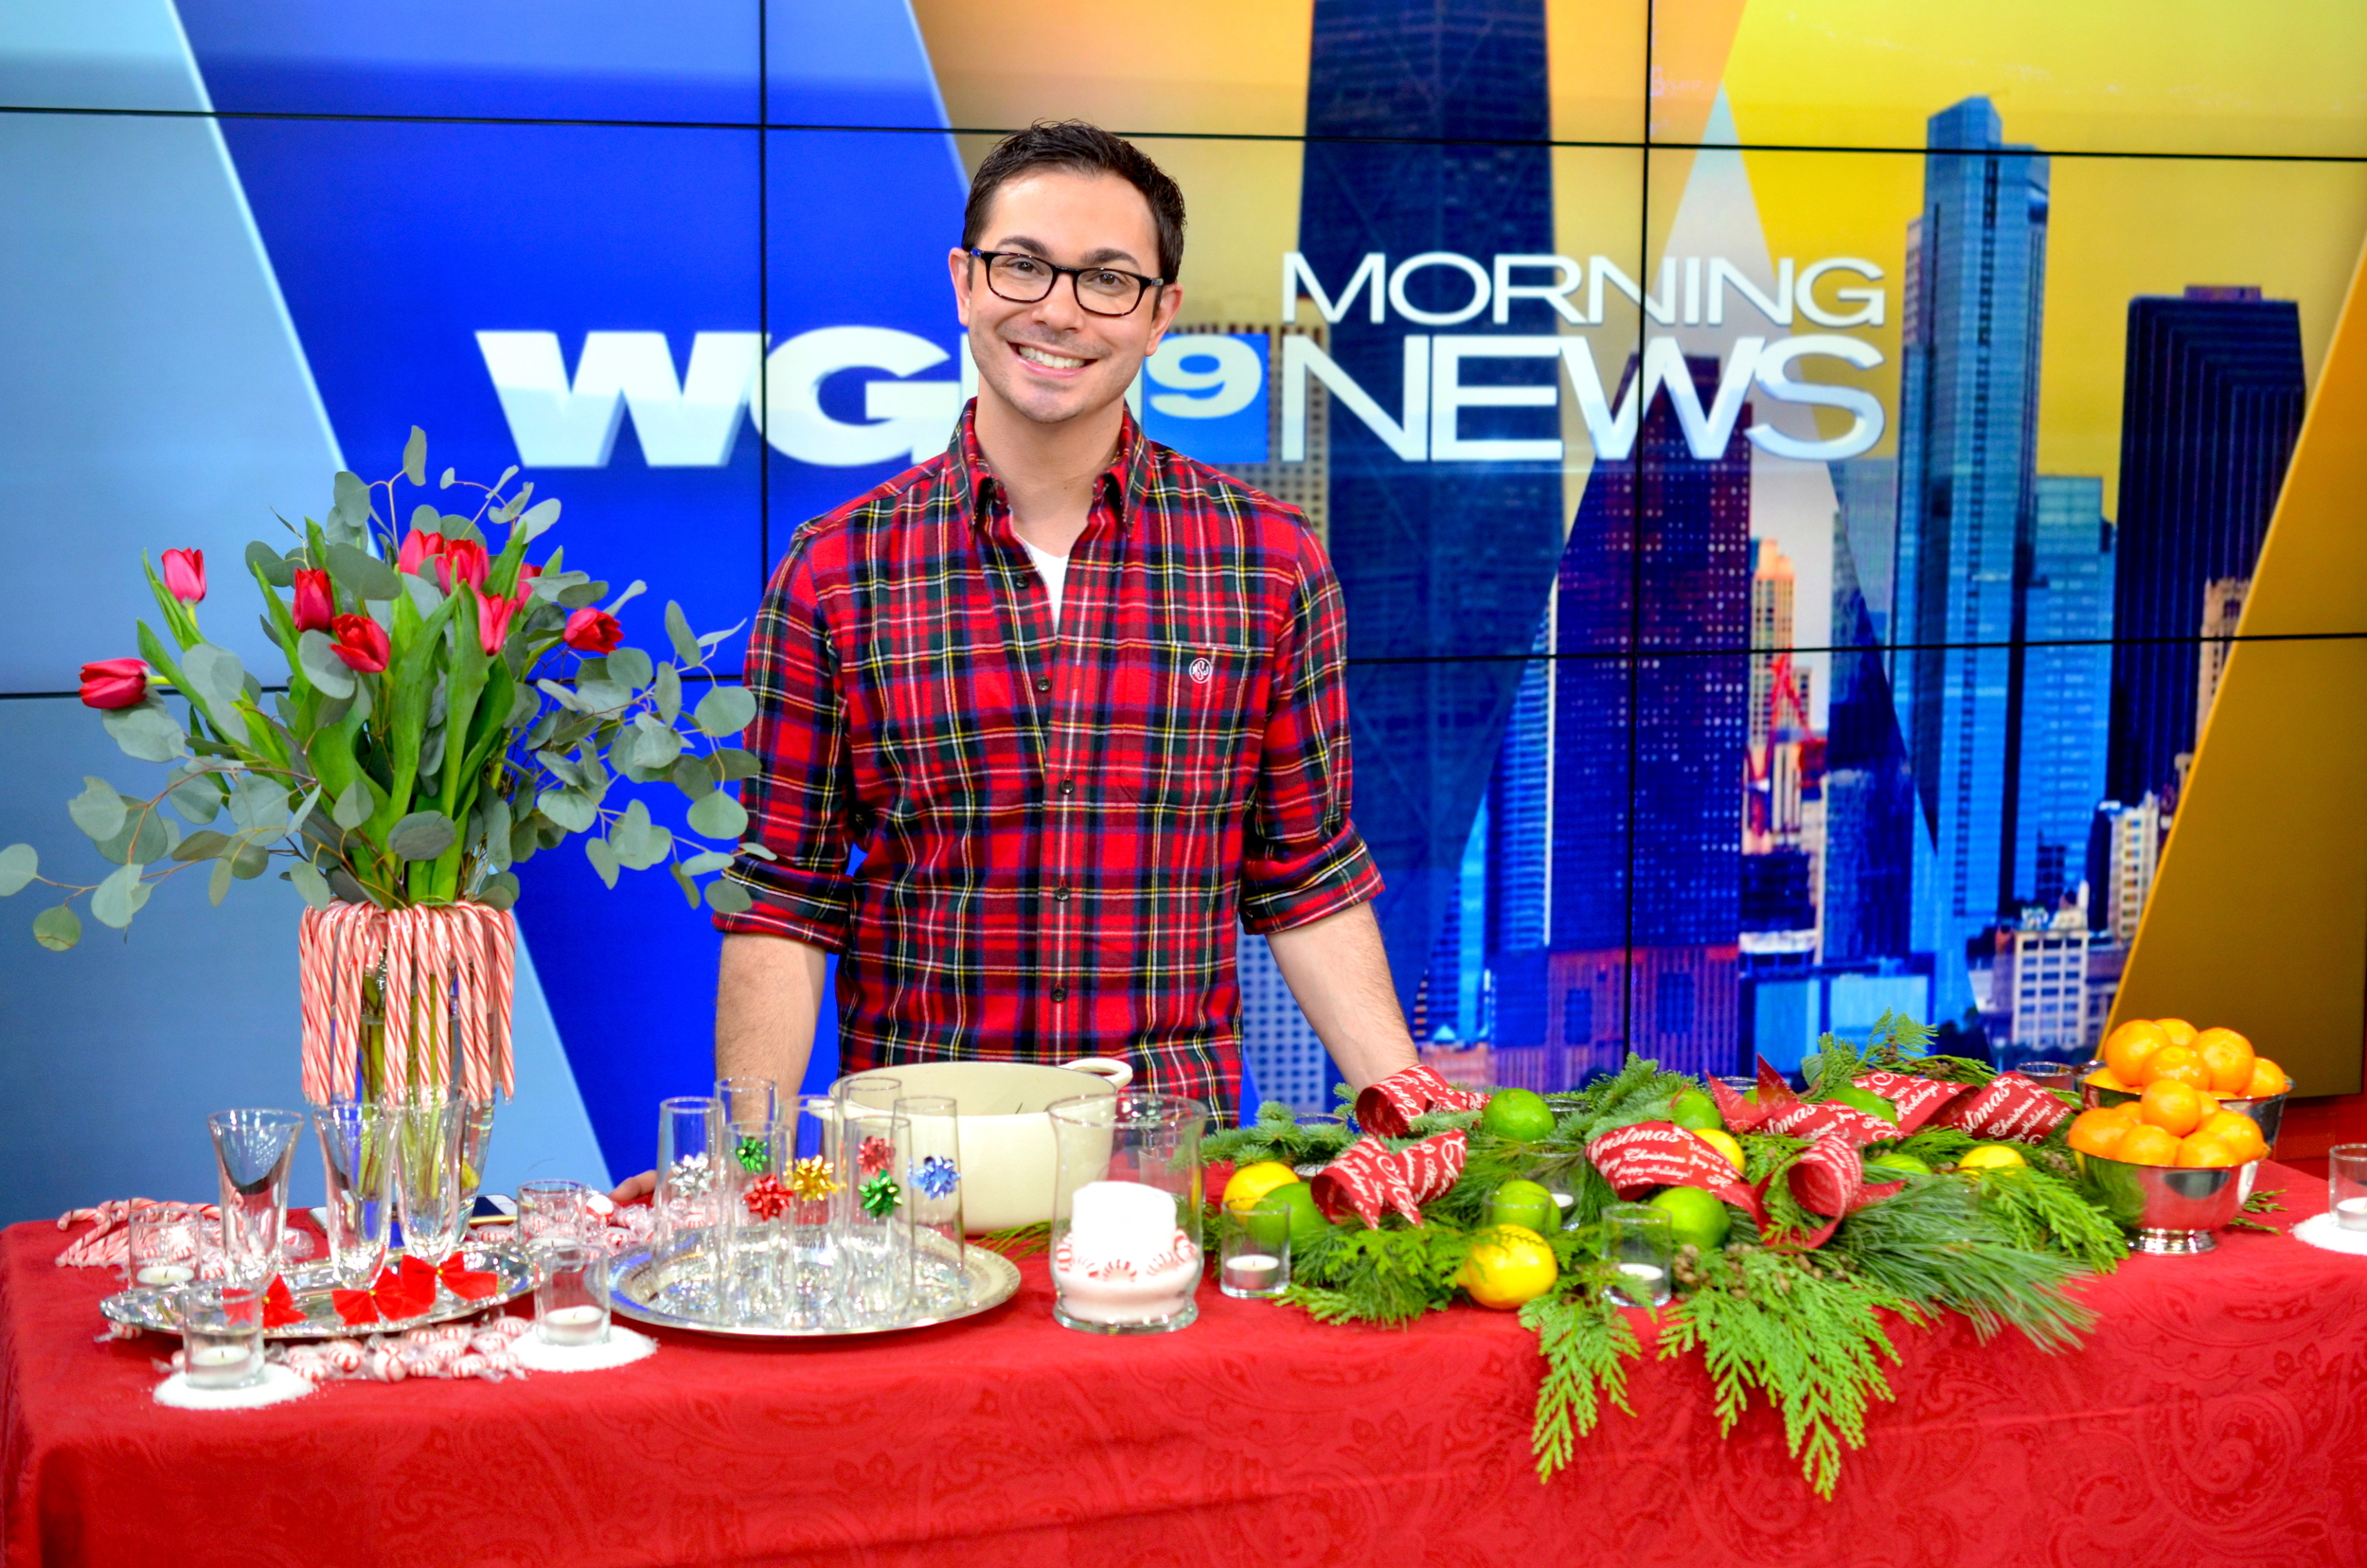 A very festive and fabulous Christmas Eve morning at WGN Chicago! Click here to watch the broadcast to discover my other 5 simple and last-minute decorating ideas.